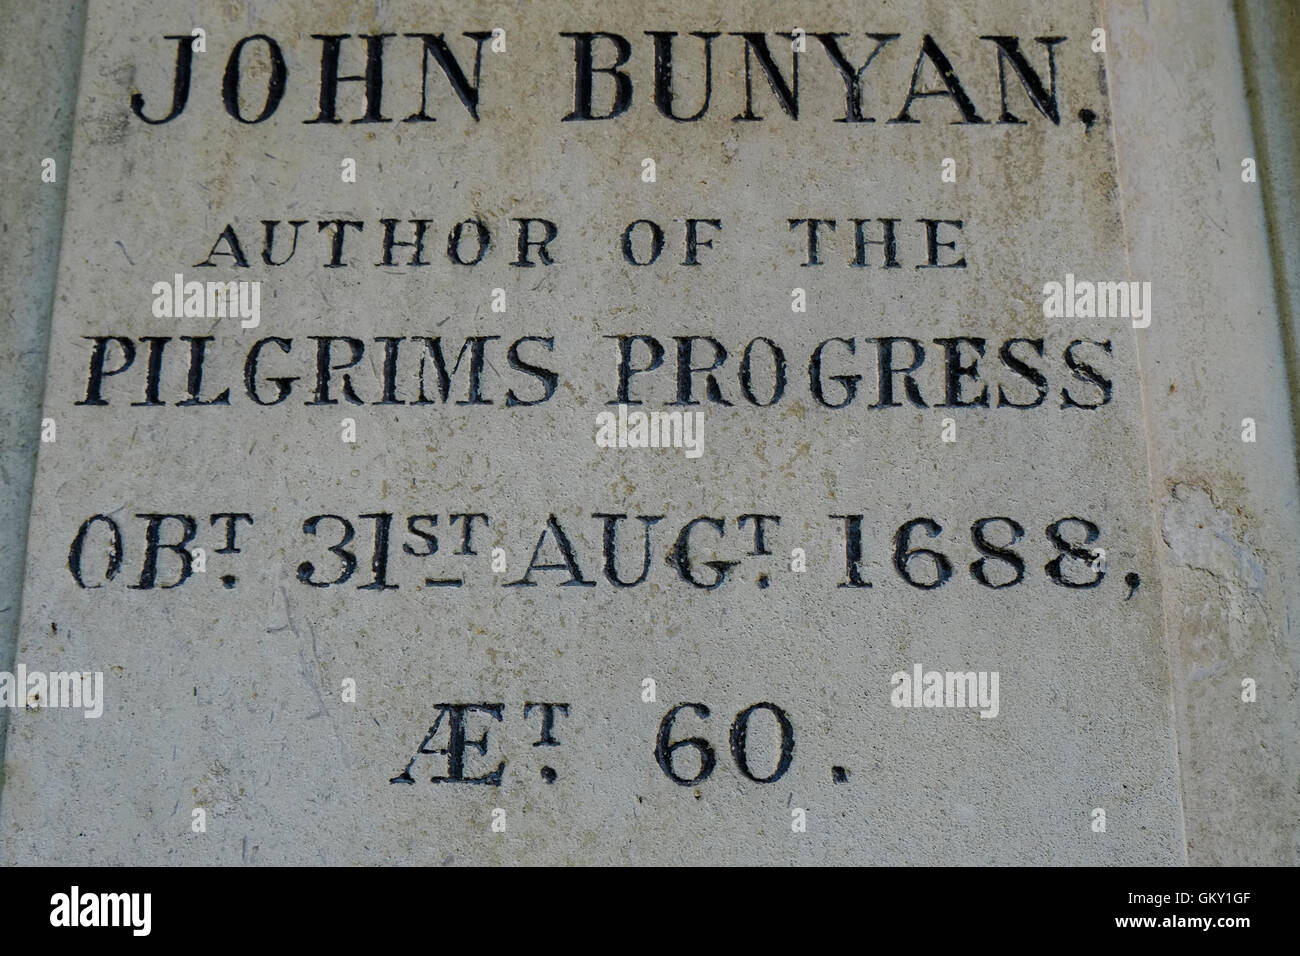 Grave of John Bunyan - Stock Image